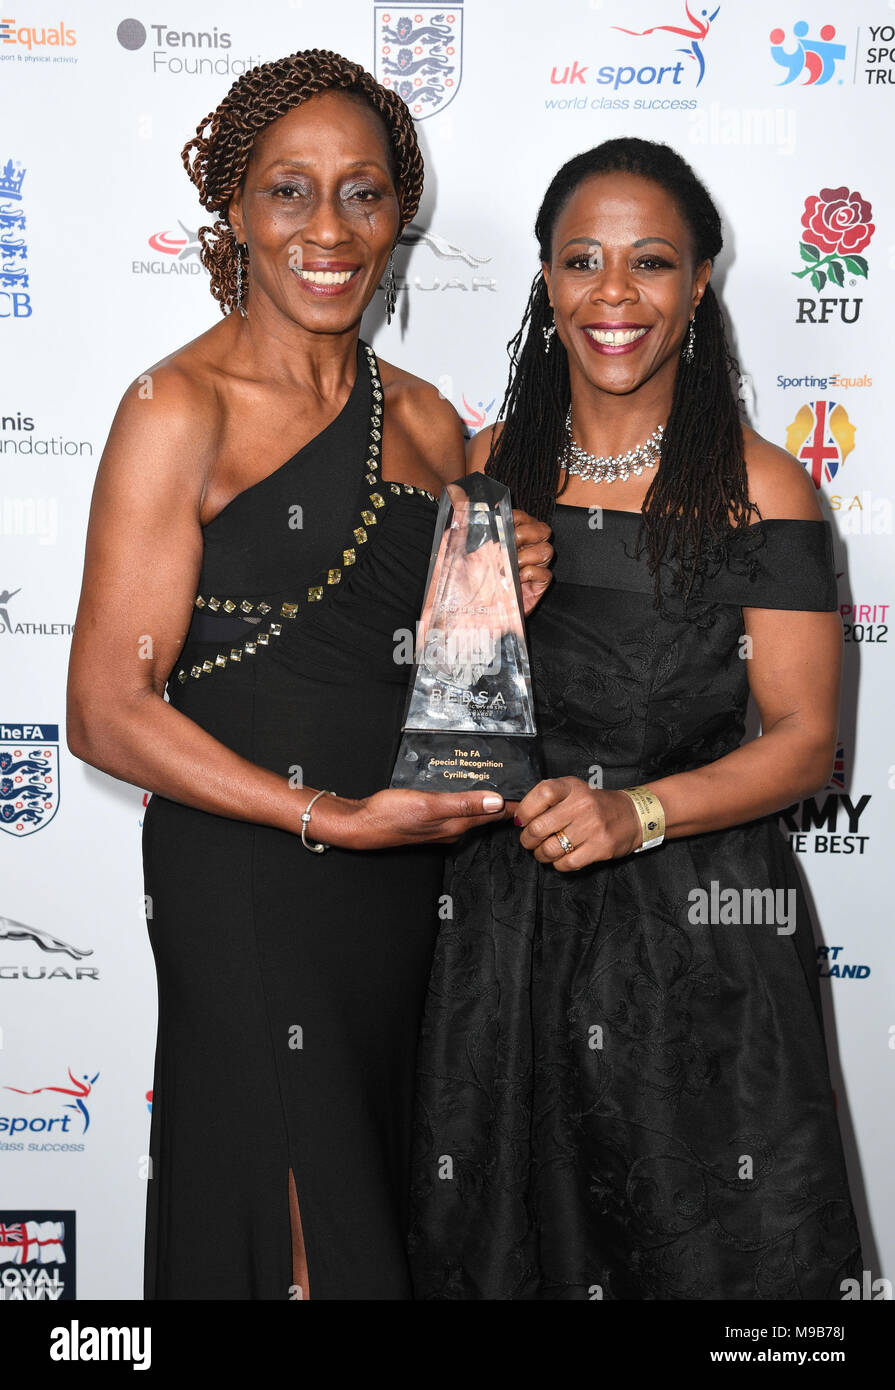 Nilla Regis (left) and Denise Regis accepting the FA Special Recognition Award for Cyrille Regis at the BEDSA Awards 2018, sponsored by Sporting Equals, at the Grosvenor House Hotel, London. Stock Photo